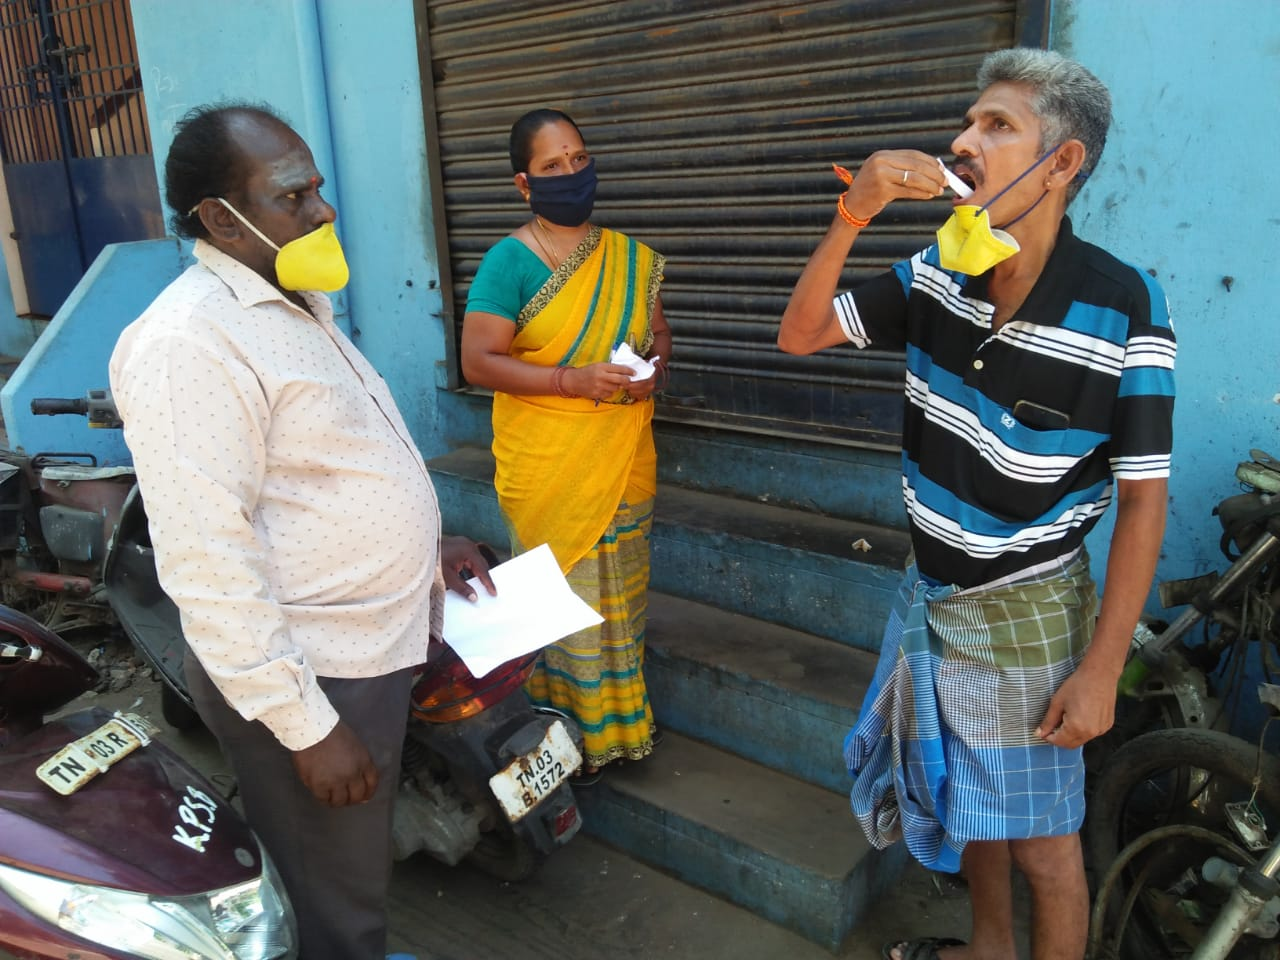 OST medicines being distributed to community members in Chennai.